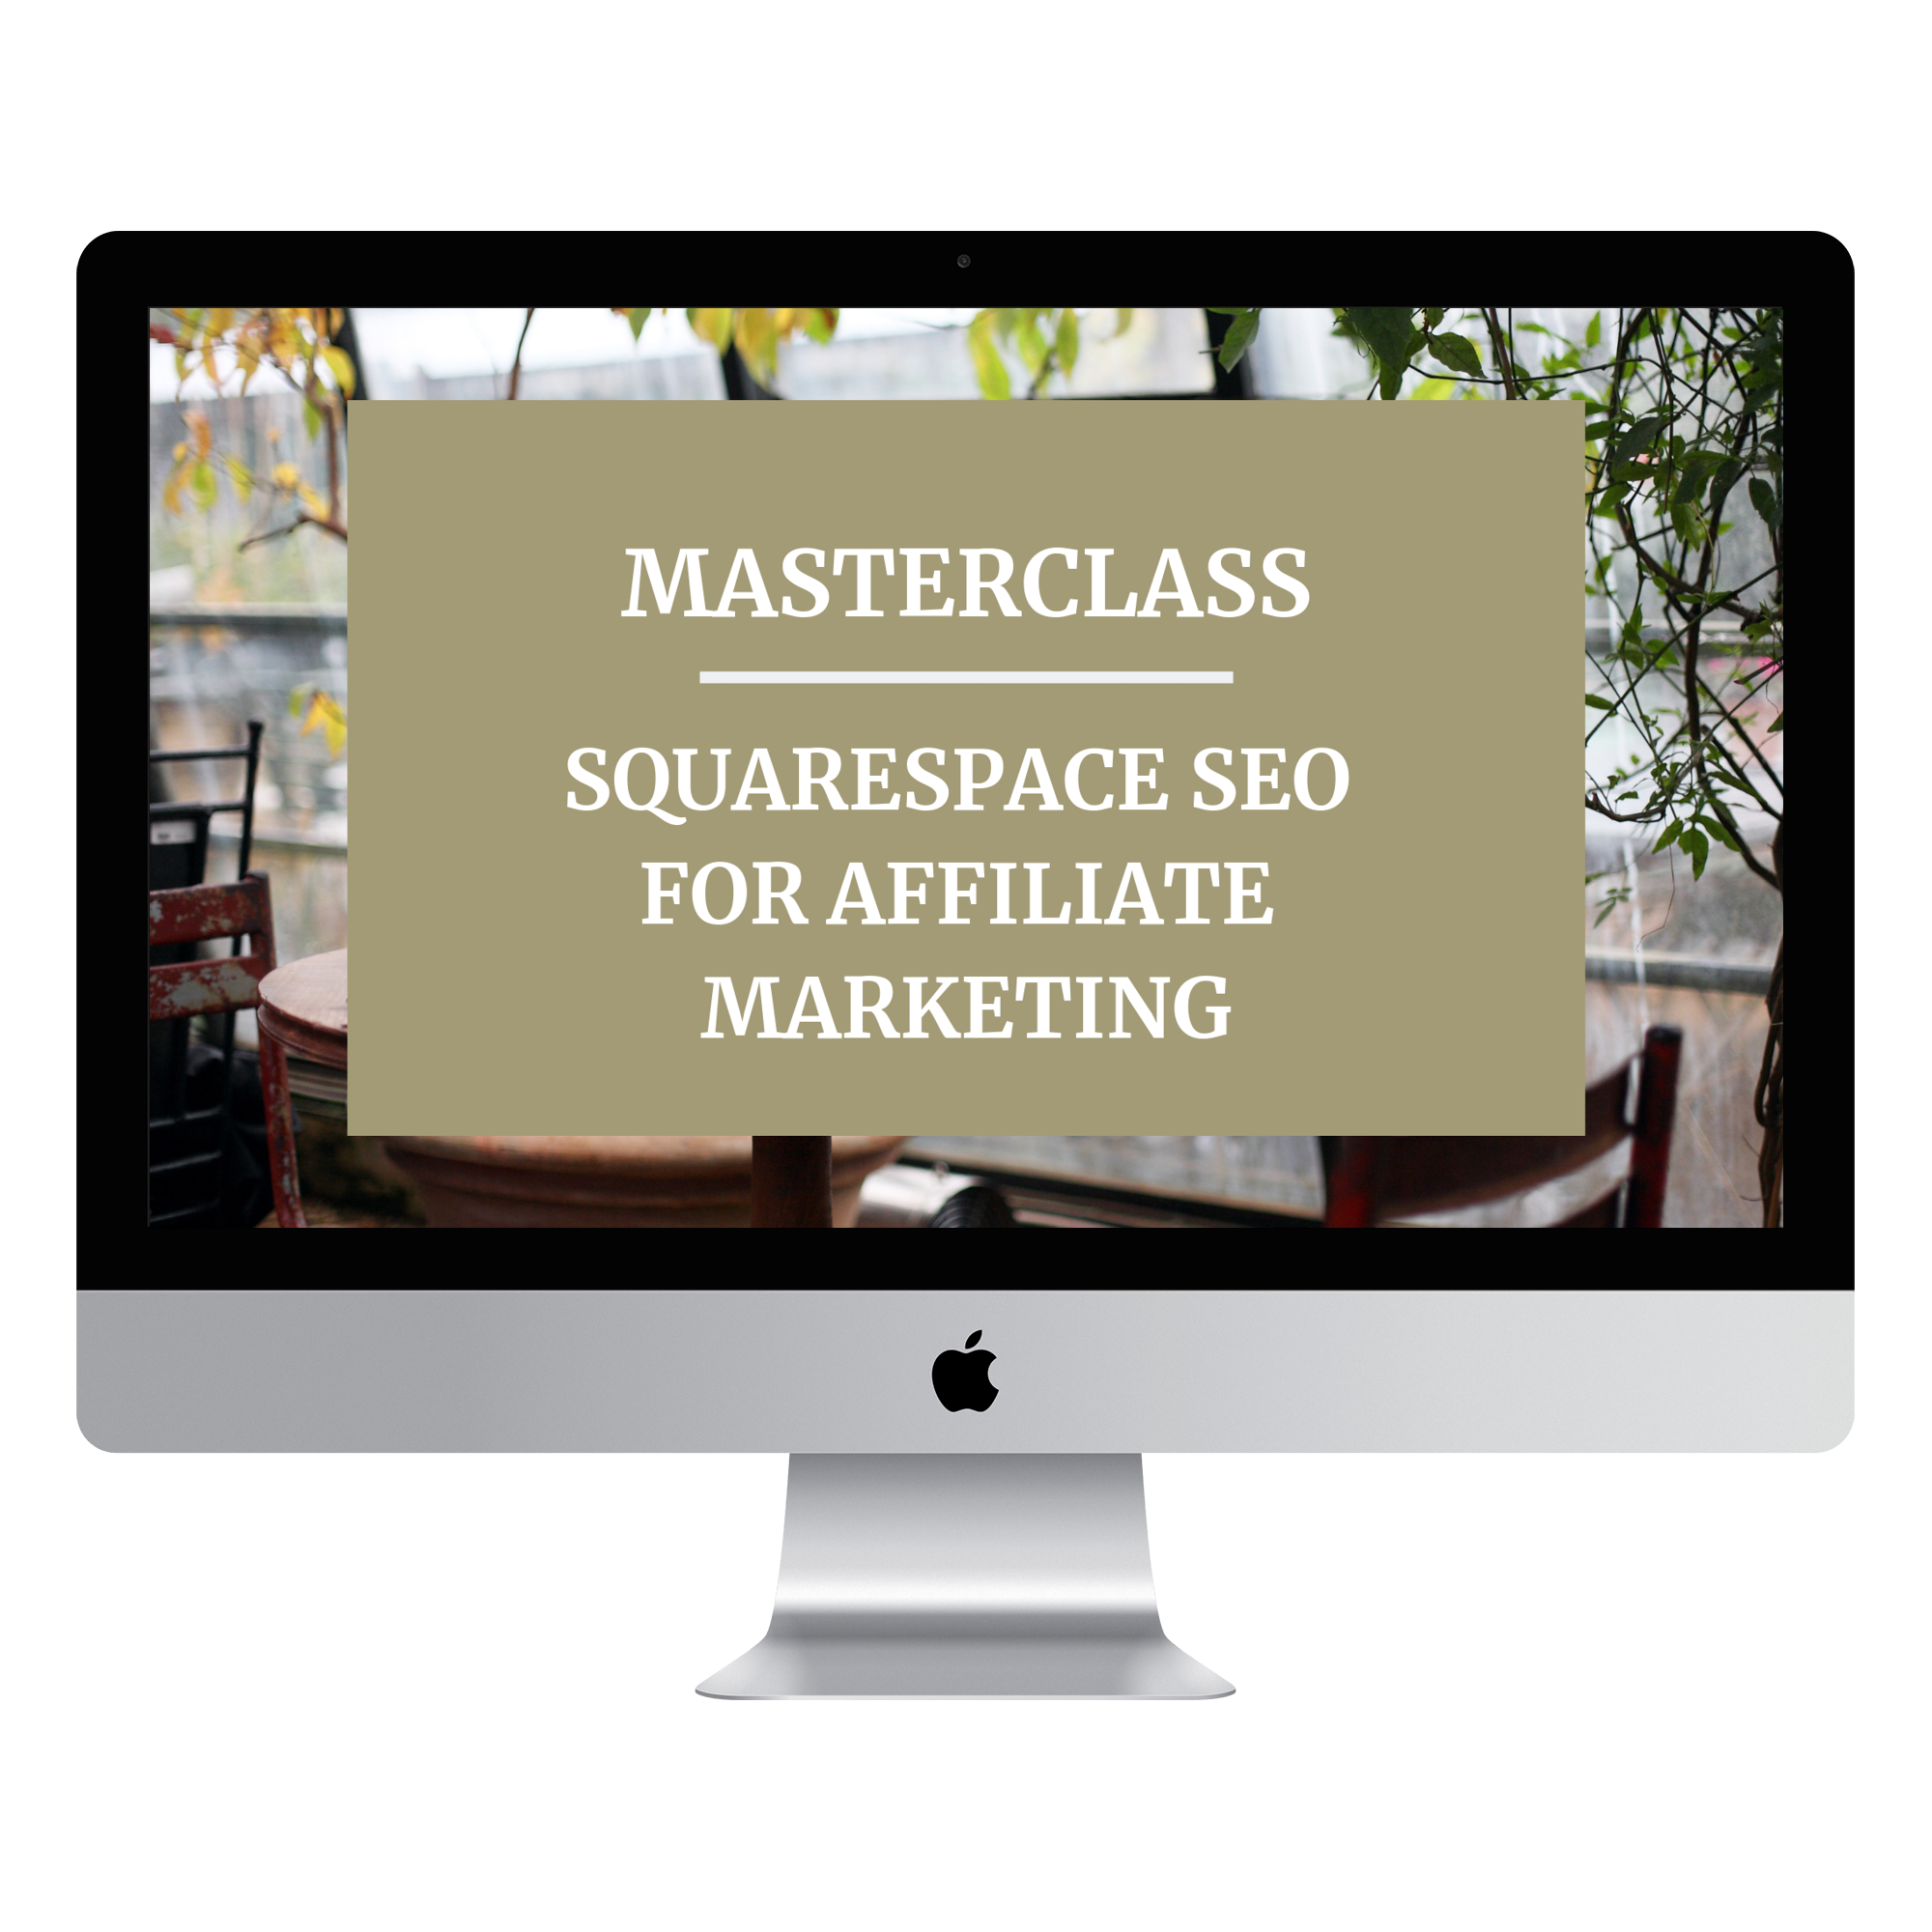 Squarespace SEO and Affiliate Marketing Masterclass